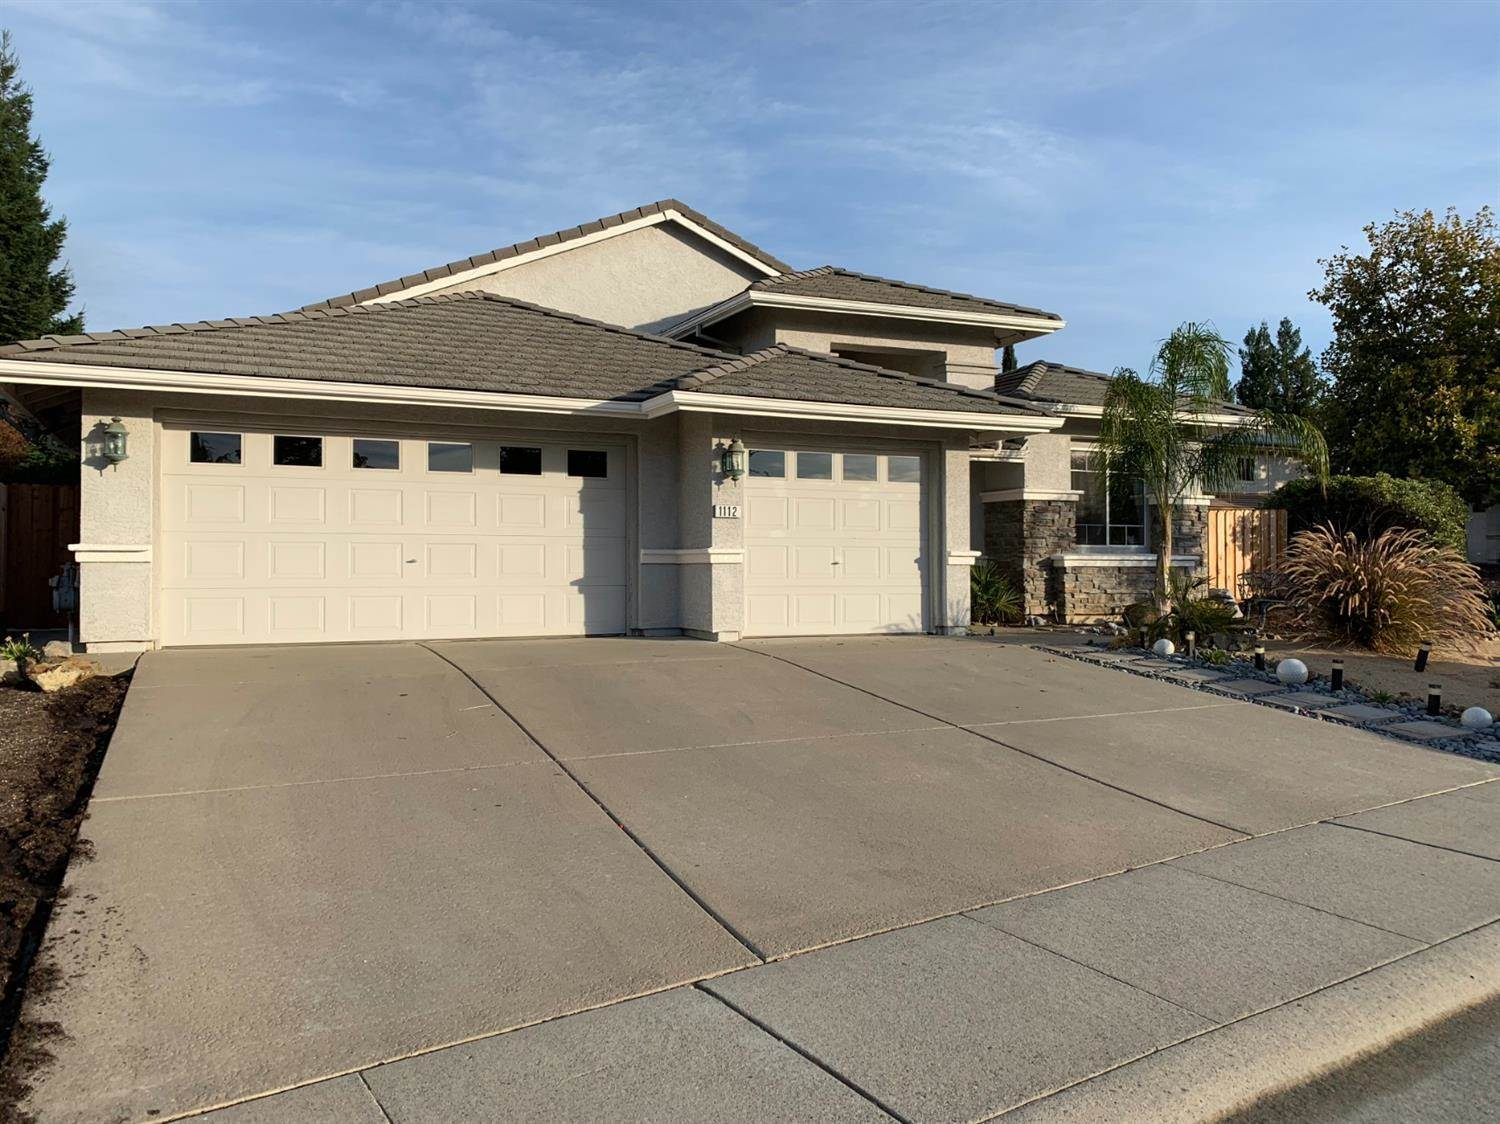 1112 Ballard Court, Folsom in  County, CA 95630 Home for Sale